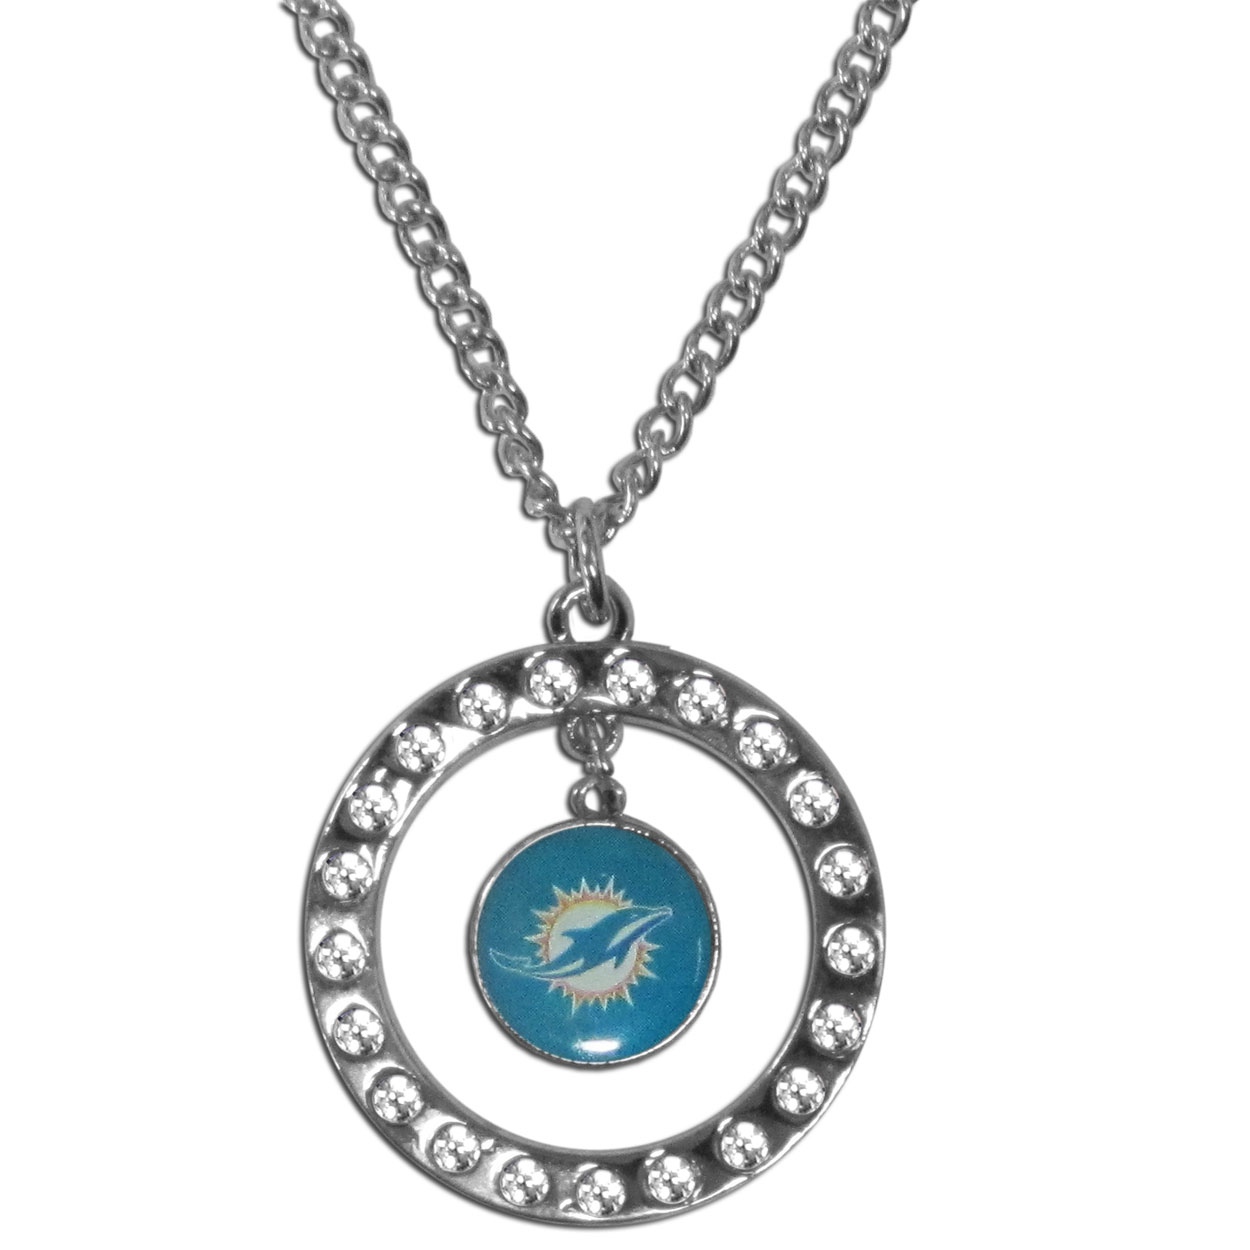 Miami Dolphins Rhinestone Hoop Necklace - Our Miami Dolphins rhinestone hoop necklace comes on an 18 inch chain and features a hoop covered in rhinestones with a high polish chrome finish and a team logo dangling in the center.